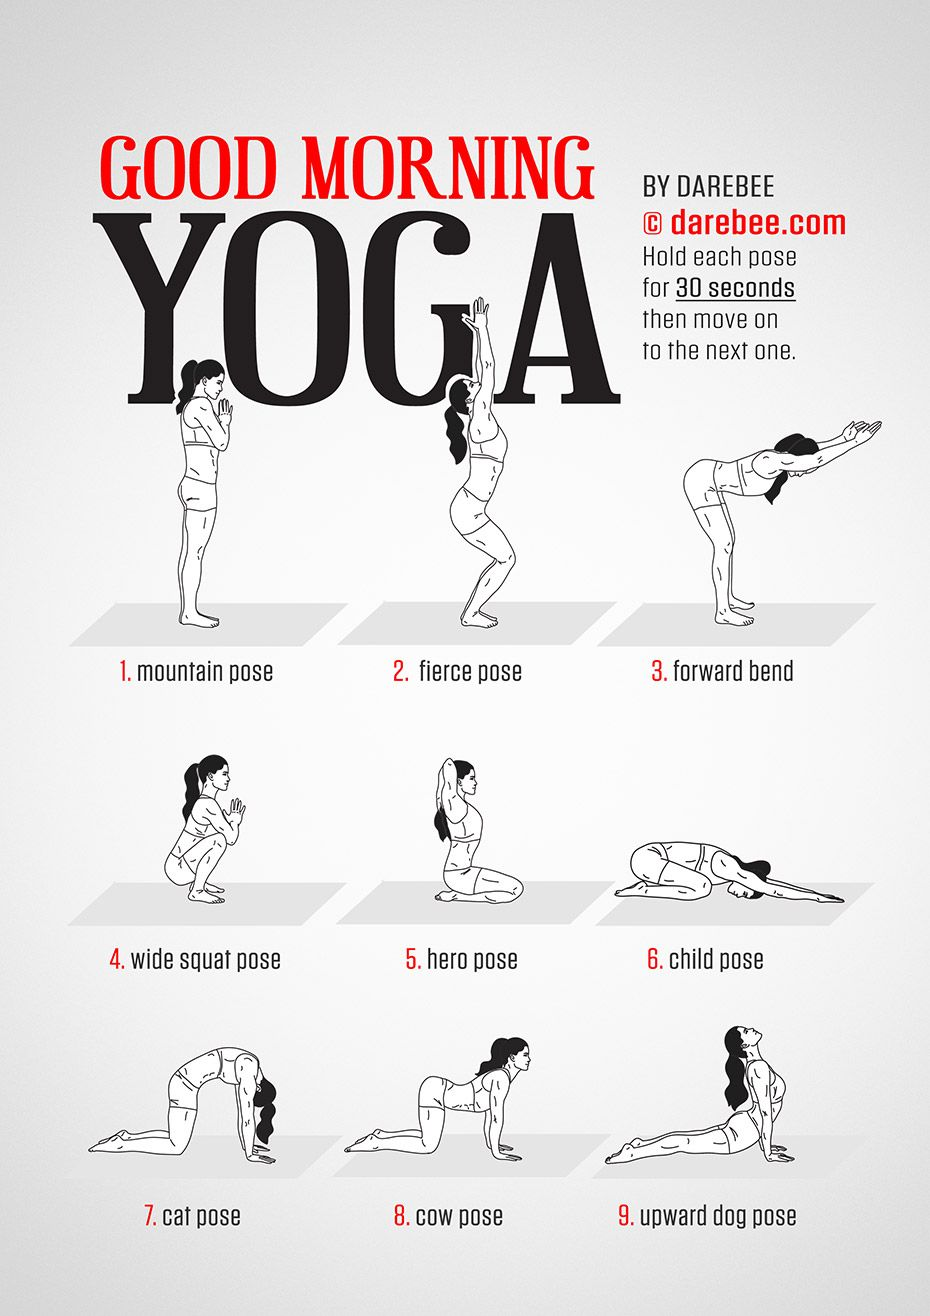 Photo of Good Morning Yoga workout by #Darebee #workoutwednesday #workout #fitness